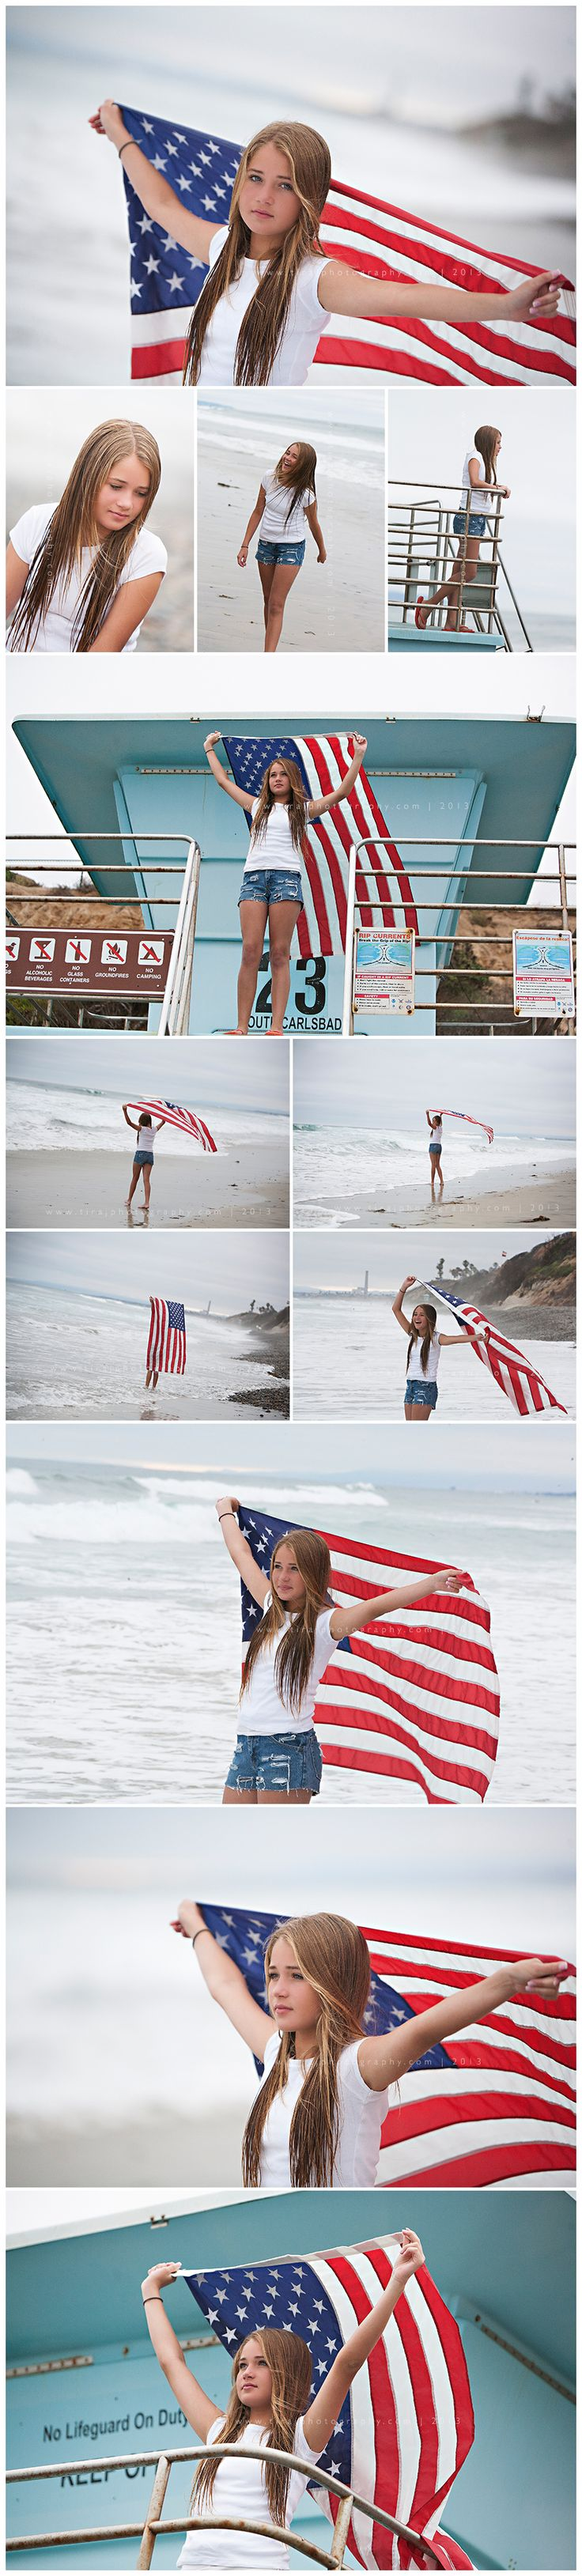 Southern California Teen Photographer | Teen Portraits at the Beach | Upland Teen Photographer | Tira J Photography